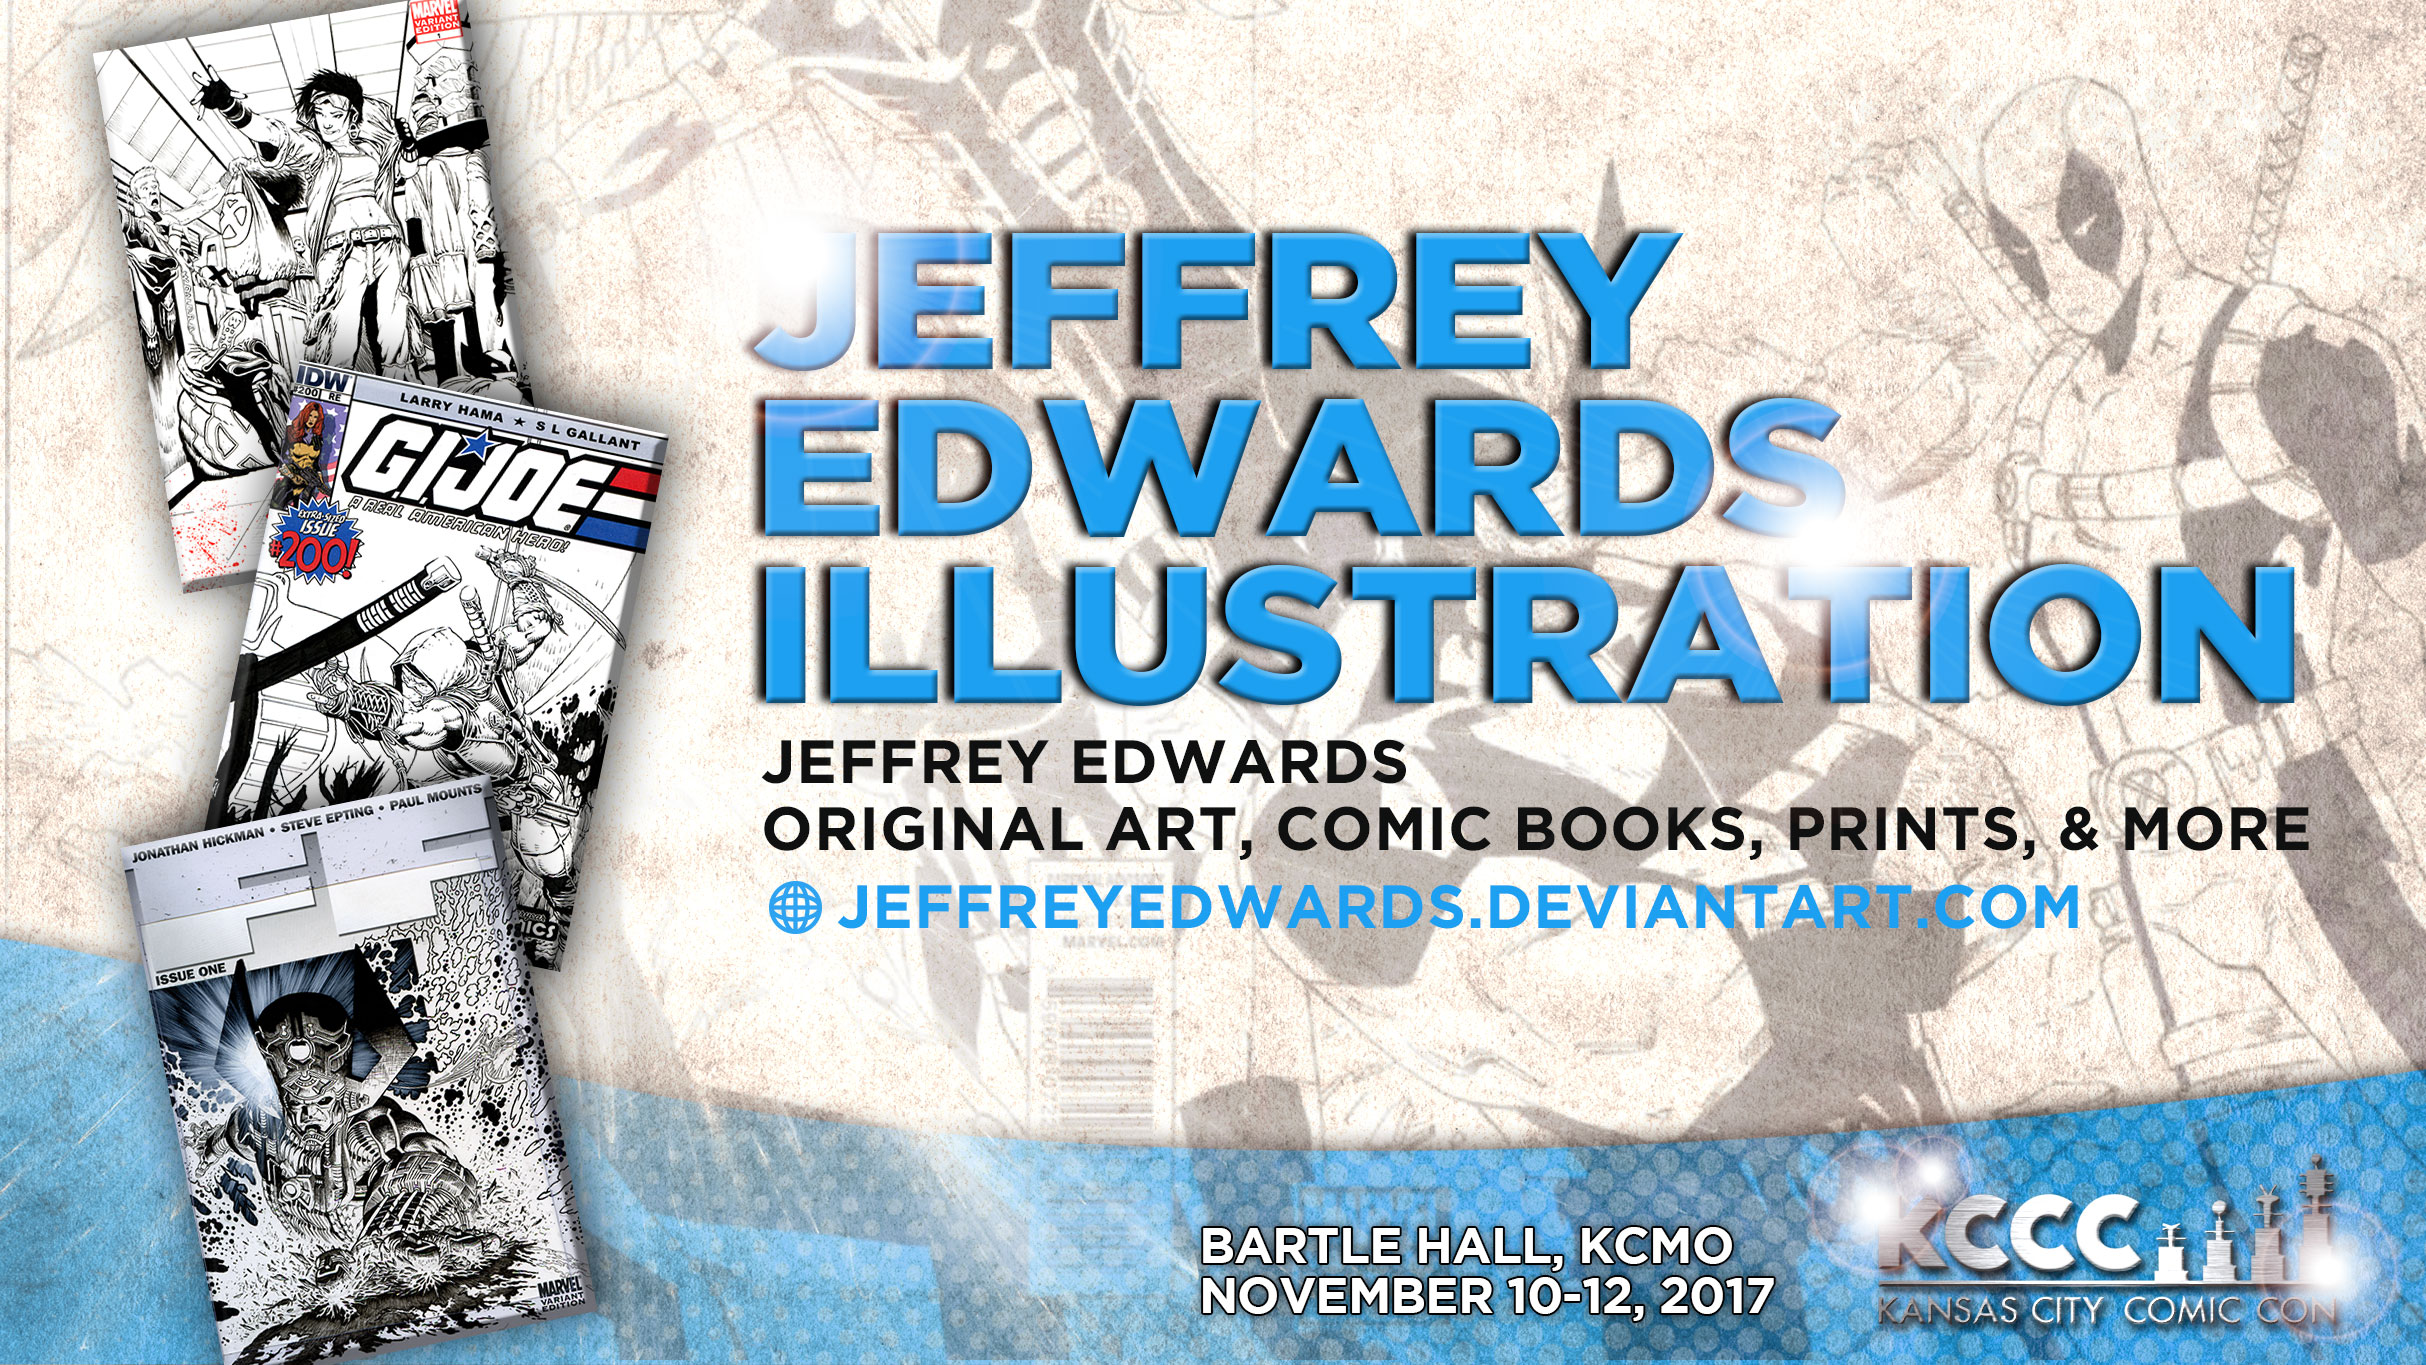 KCCC_ANNOUNCEMENT_Sketch_JeffreyEdwards.jpg